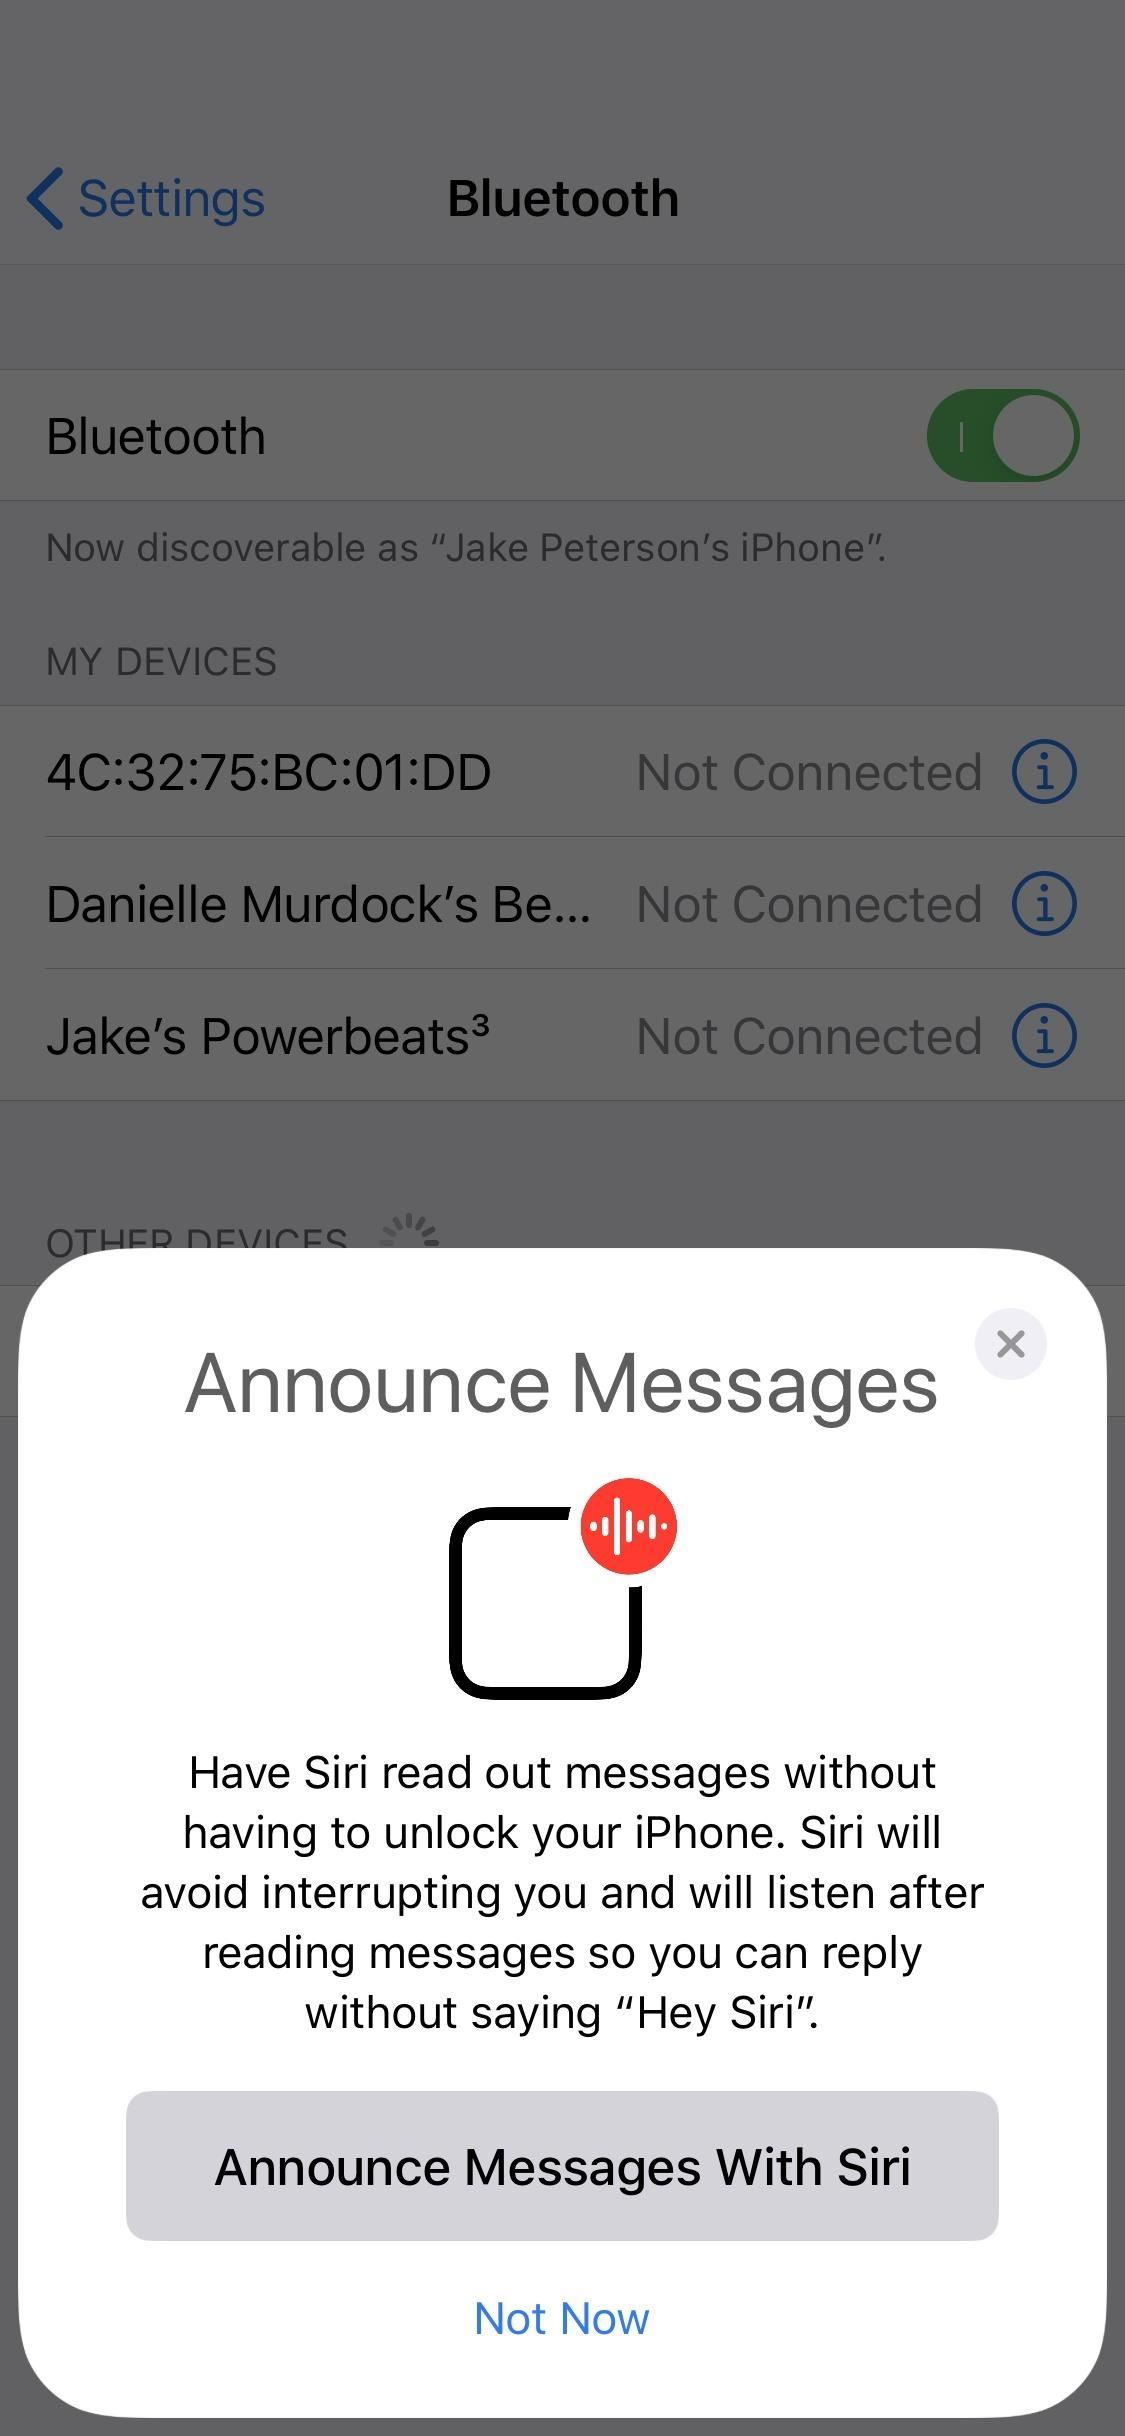 Announce Messages with Siri Not Working on iOS 13.2? Here's the Fix